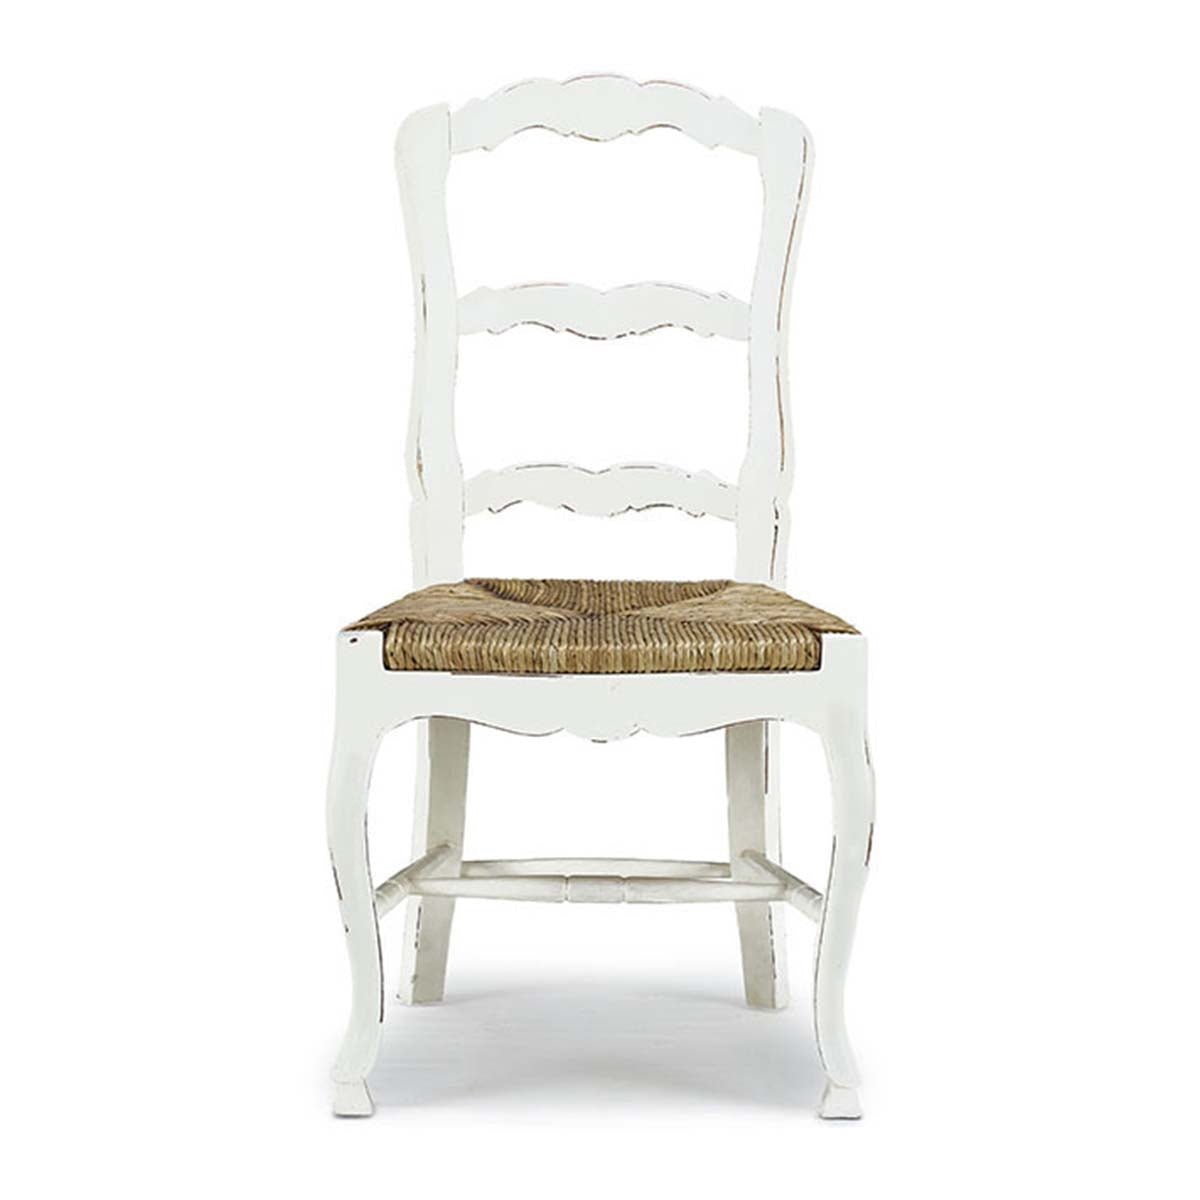 French Country Ladderback Dining Chair Set of 4 White - Furniture on Main